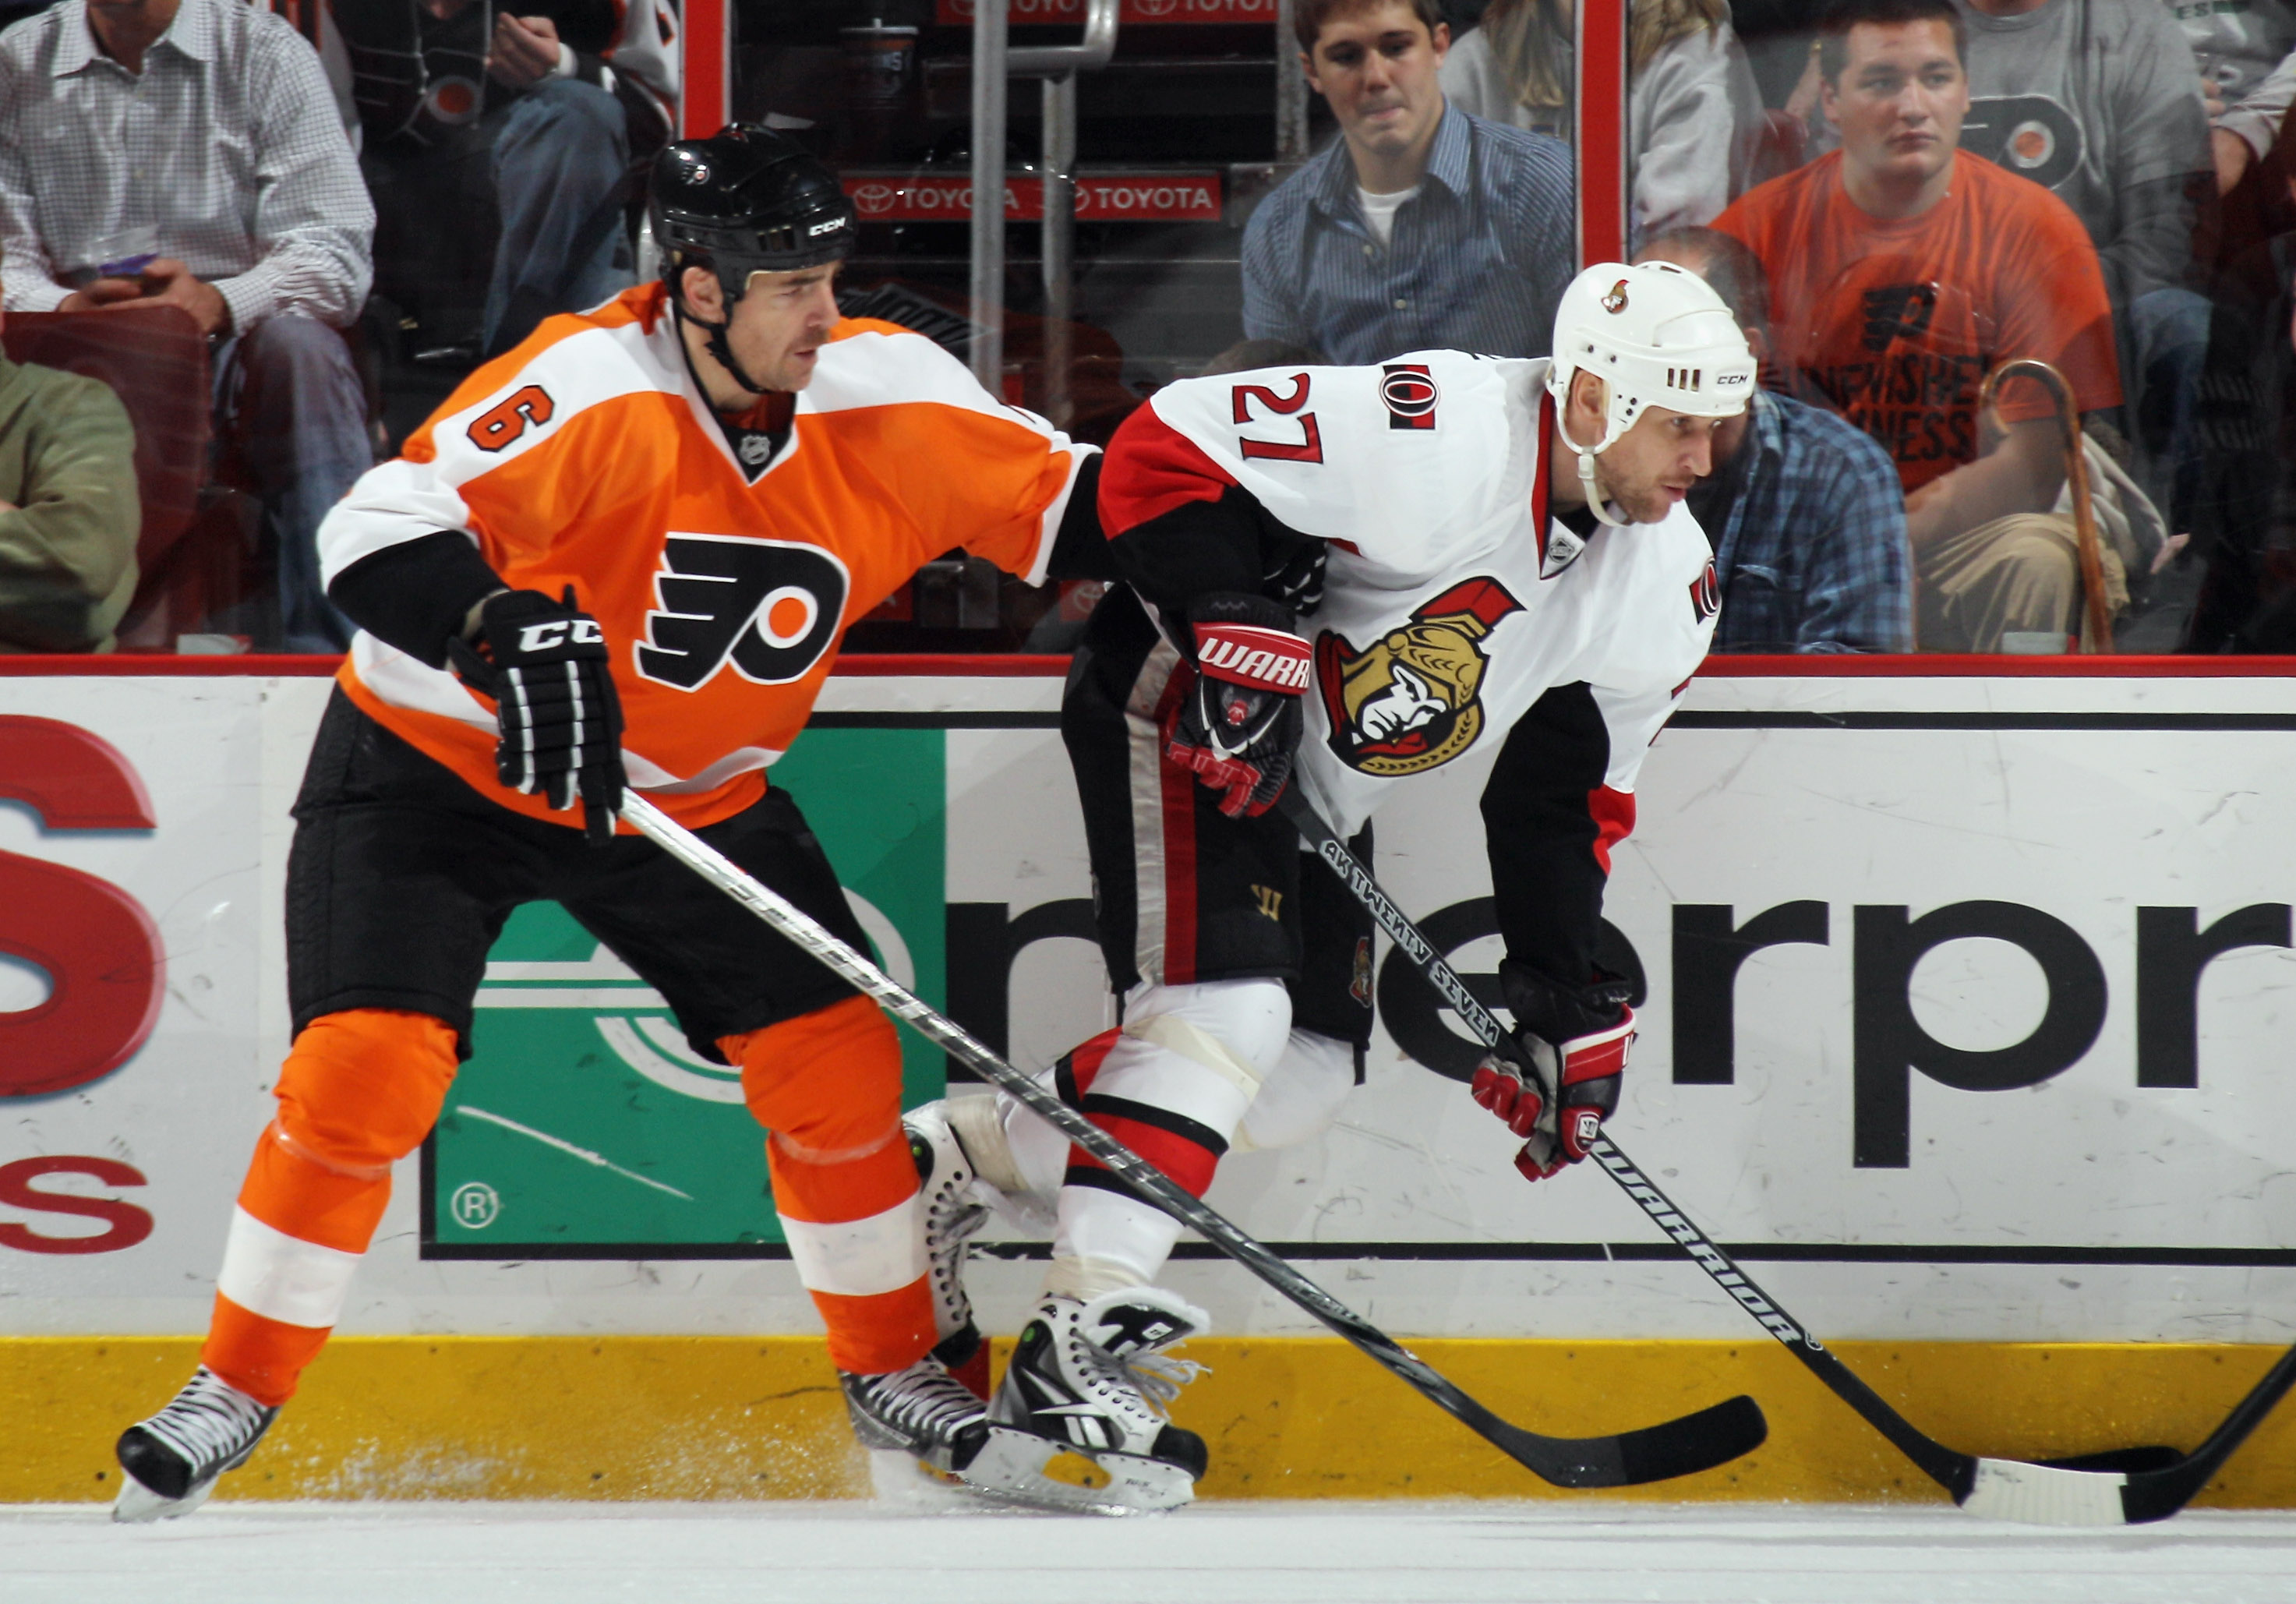 PHILADELPHIA - NOVEMBER 15: Alex Kovalev #27 of the Ottawa Senators is checked by Sean O'Donnell #6 of the Philadelphia Flyers at the Wells Fargo Center on November 15, 2010 in Philadelphia, Pennsylvania. The Flyers defeated the Senators 5-1. (Photo by Br